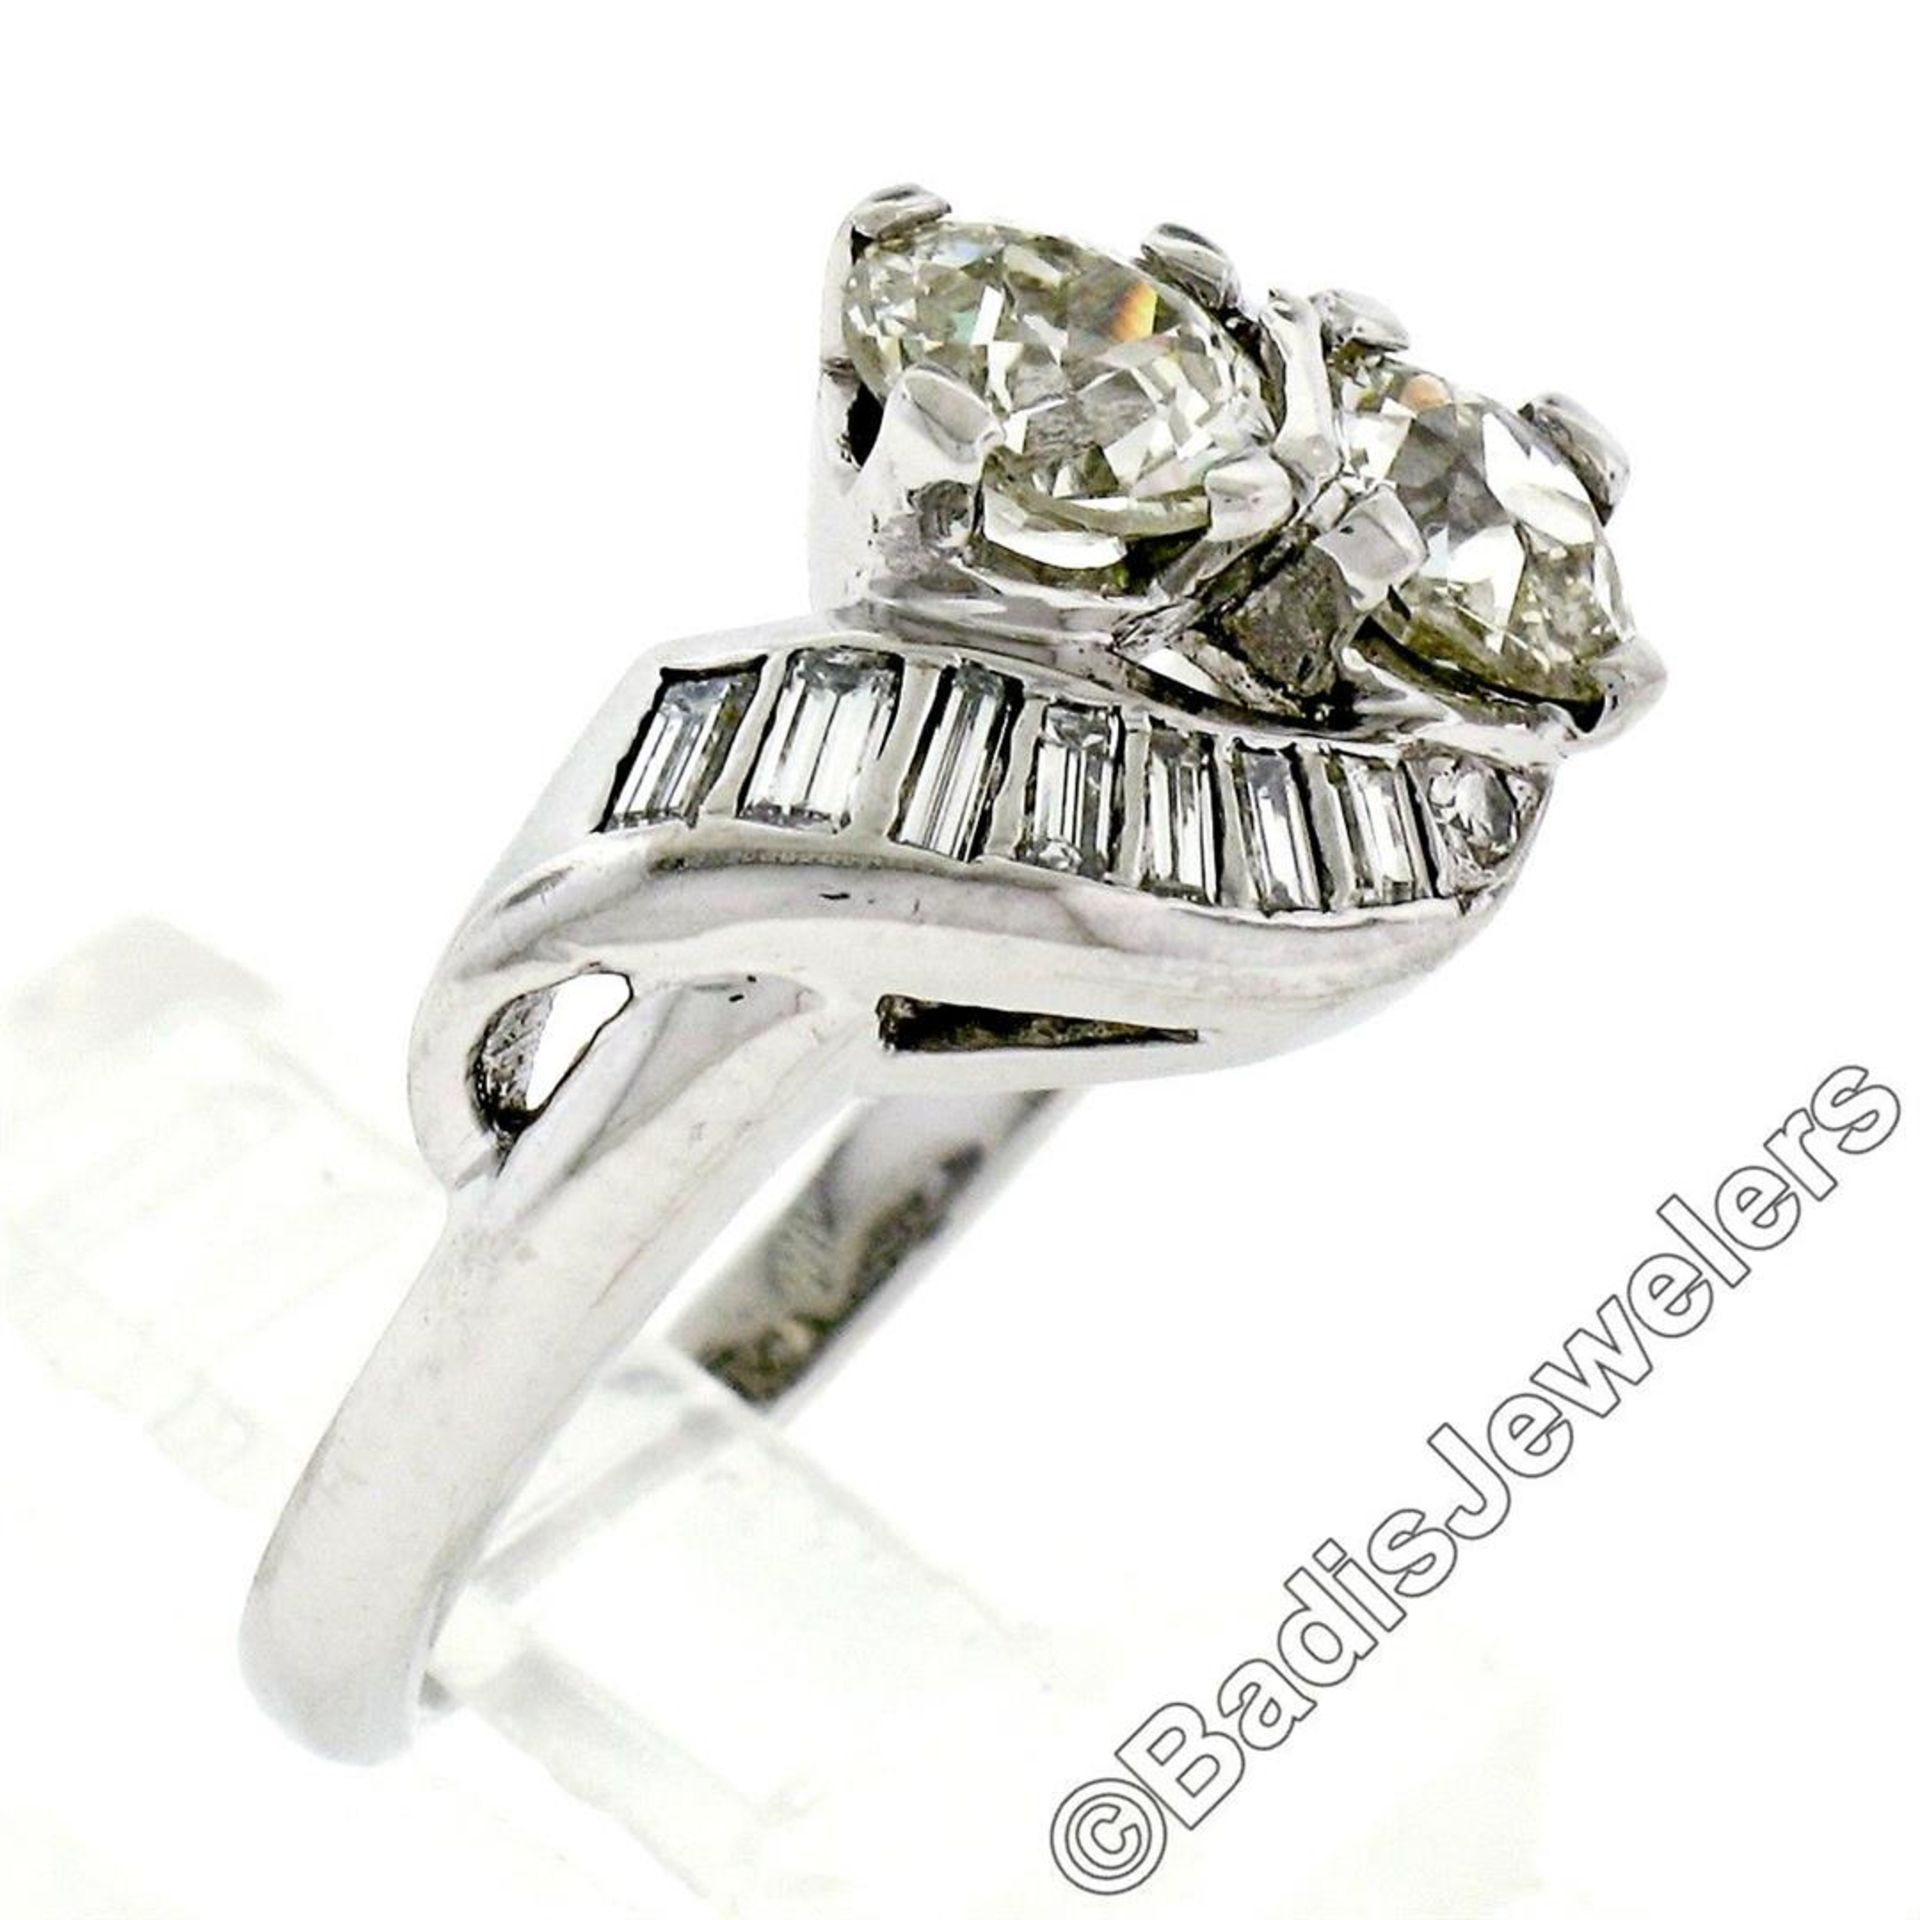 Art Deco Platinum 1.48 ctw Old European and Baguette Cut Diamond Bypass Ring - Image 2 of 9